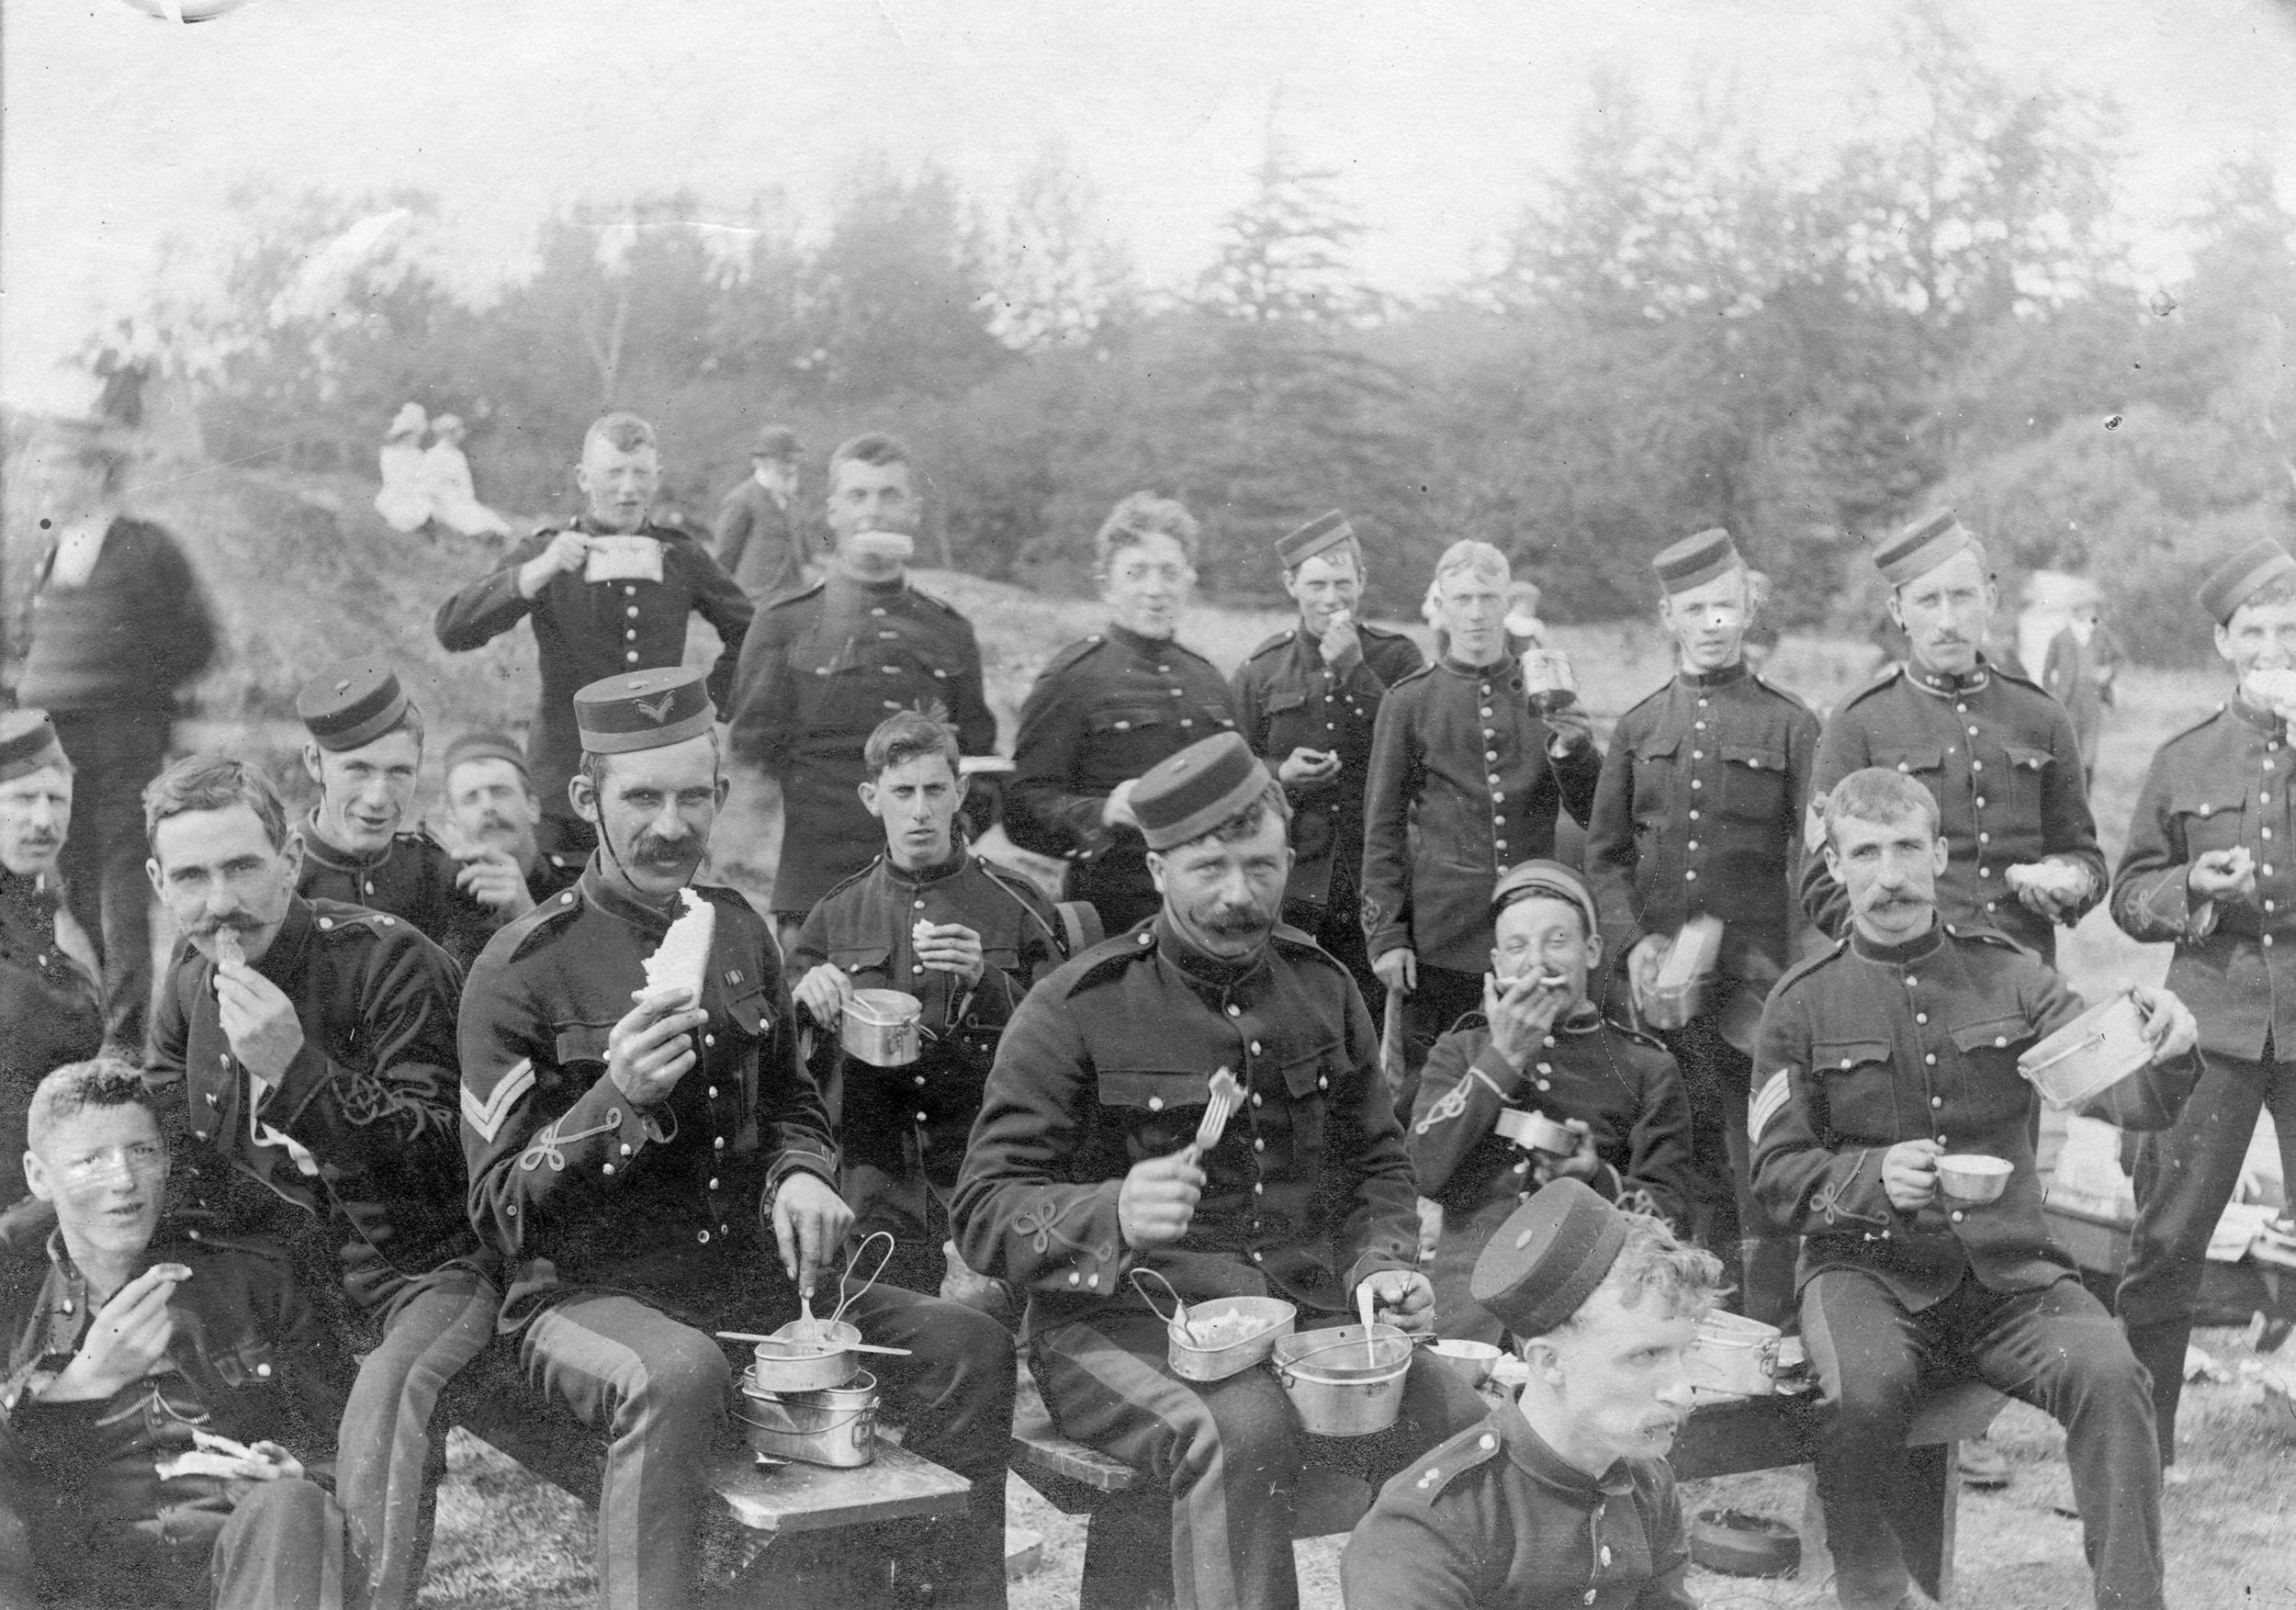 This photograph shows men from the 5th Regiment Canadian Garrison Artillery, Victoria, and the 6th Regiment The Duke of Connaught's Own Rifles of Vancouver having an outdoor meal in camp at Macaulay Point, Victoria, circa 1900. In 1897, Currie joined the 'Dandy Fifth' as they were nicknamed. By 1908, his gunnery skills and aptitude led to his commanding the regiment. (major james matthews, city of Vancouver archives)